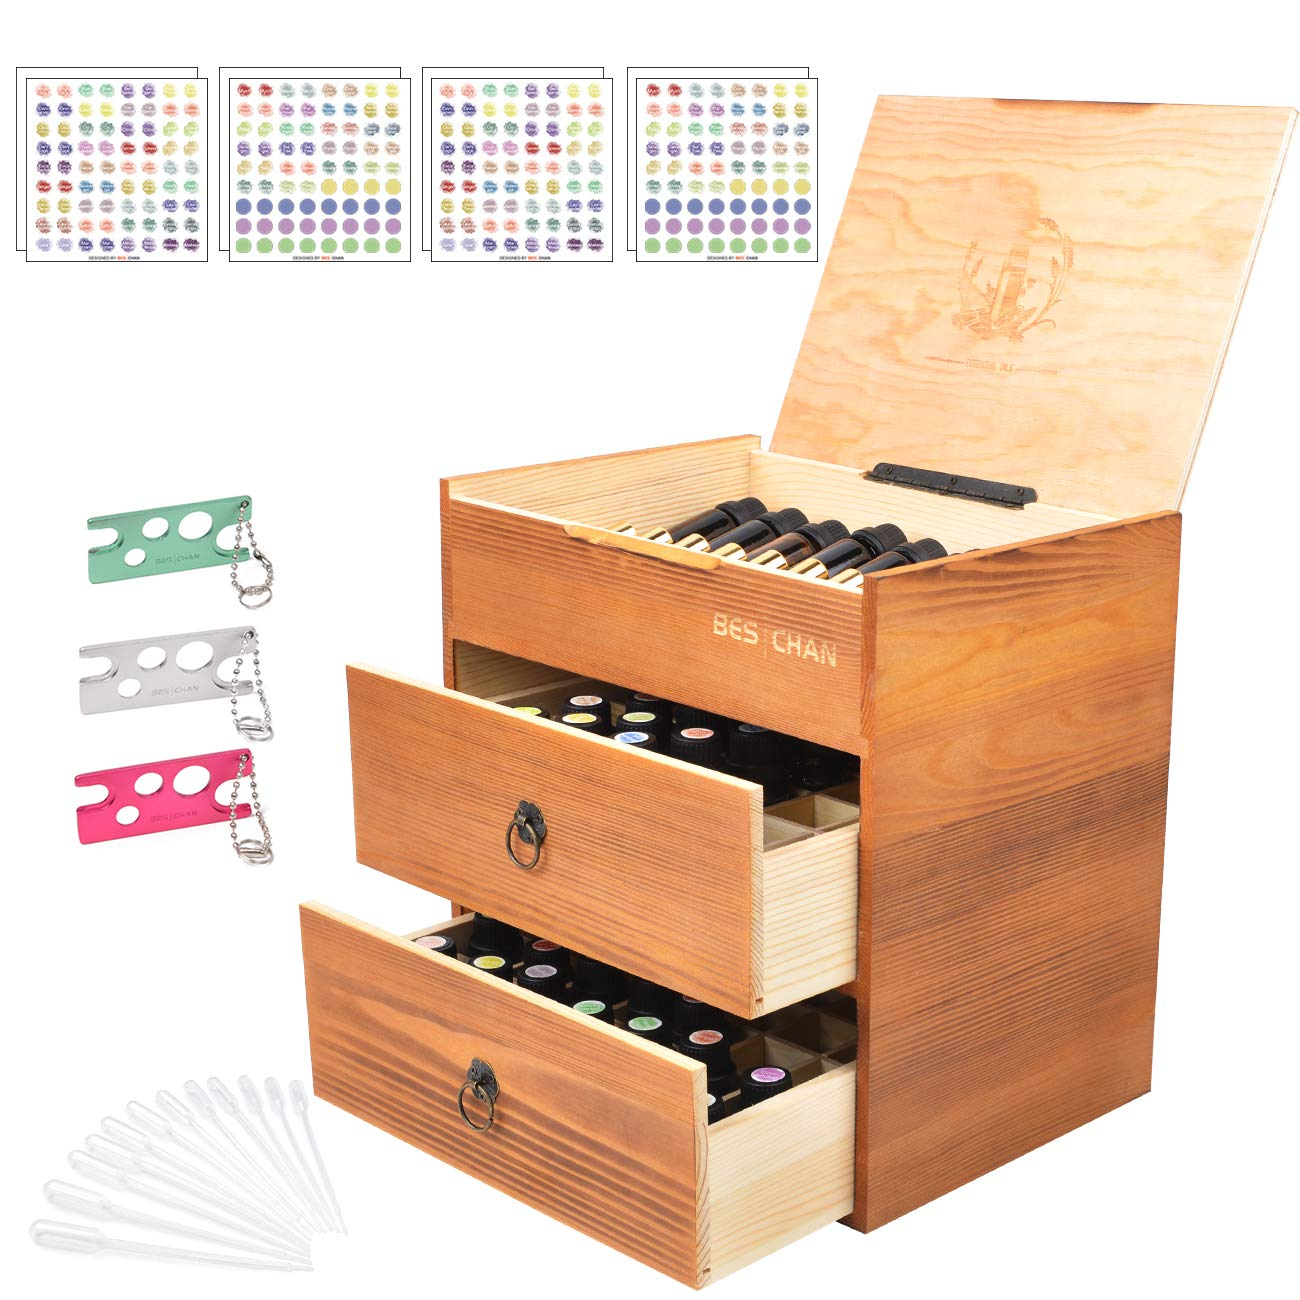 Beschan 88 Slot Wooden Essential Oil Box 3 Tier Board Inside Removable Holds 100/20/15/10/5 ml Bottles Free 576 EO Stickers 3 Openers and 12 Droppers by BES CHAN